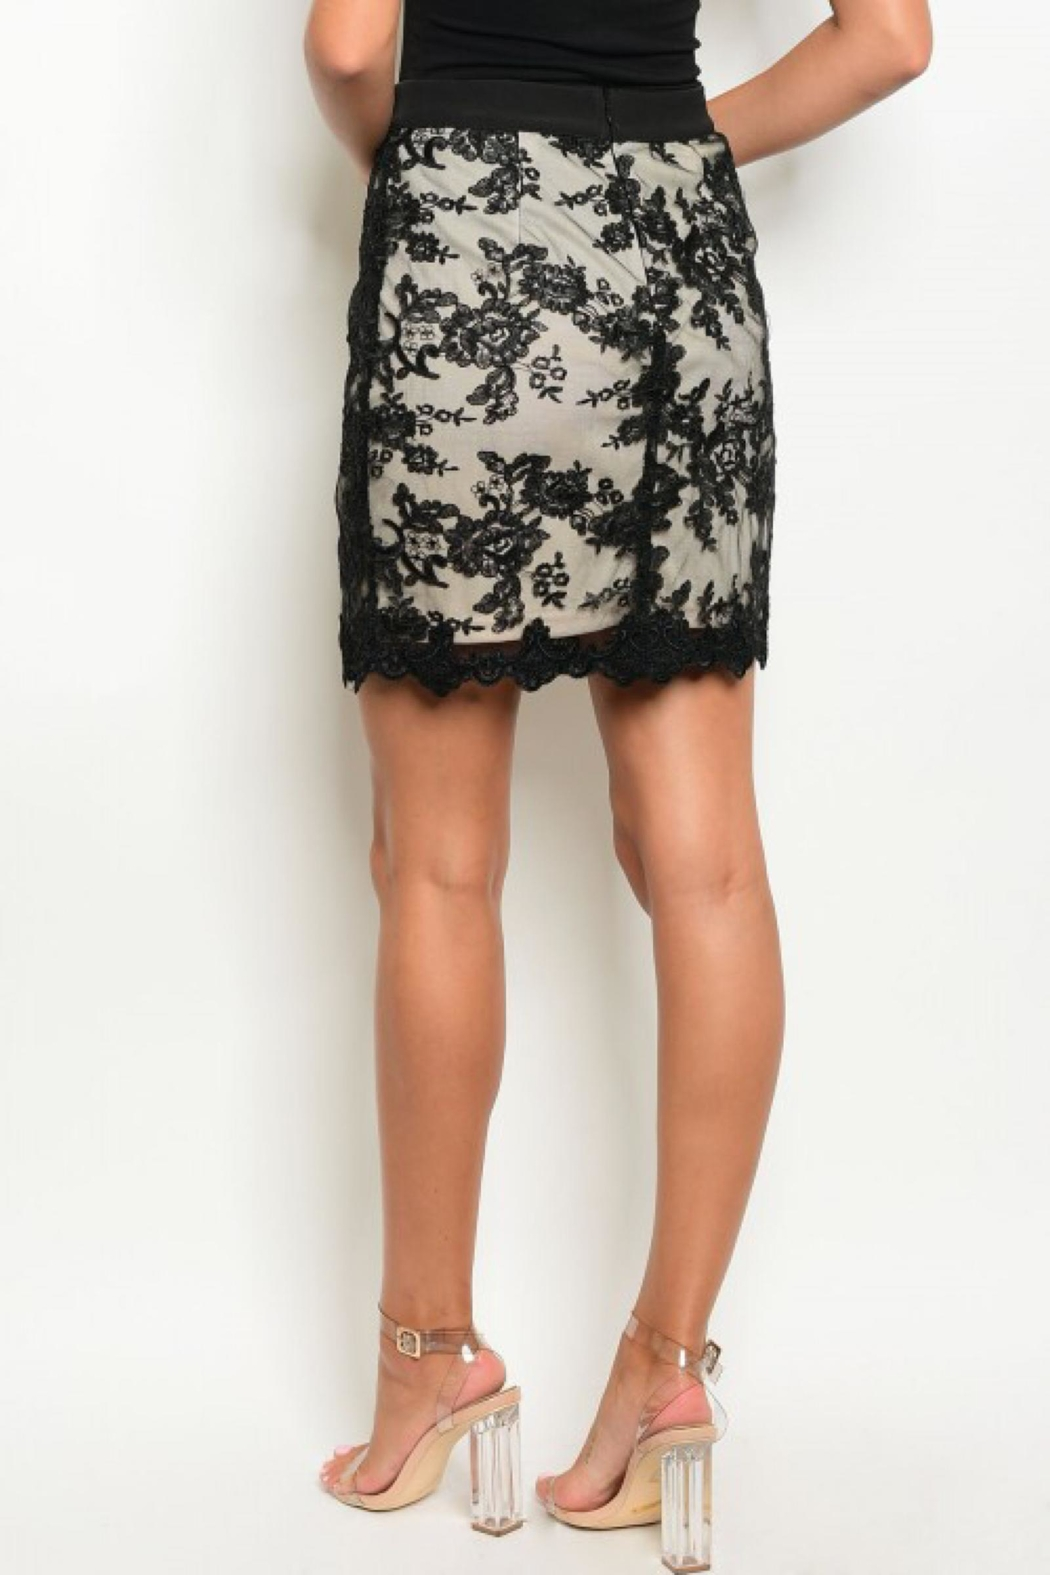 People Outfitter Black Lace Skirt - Side Cropped Image